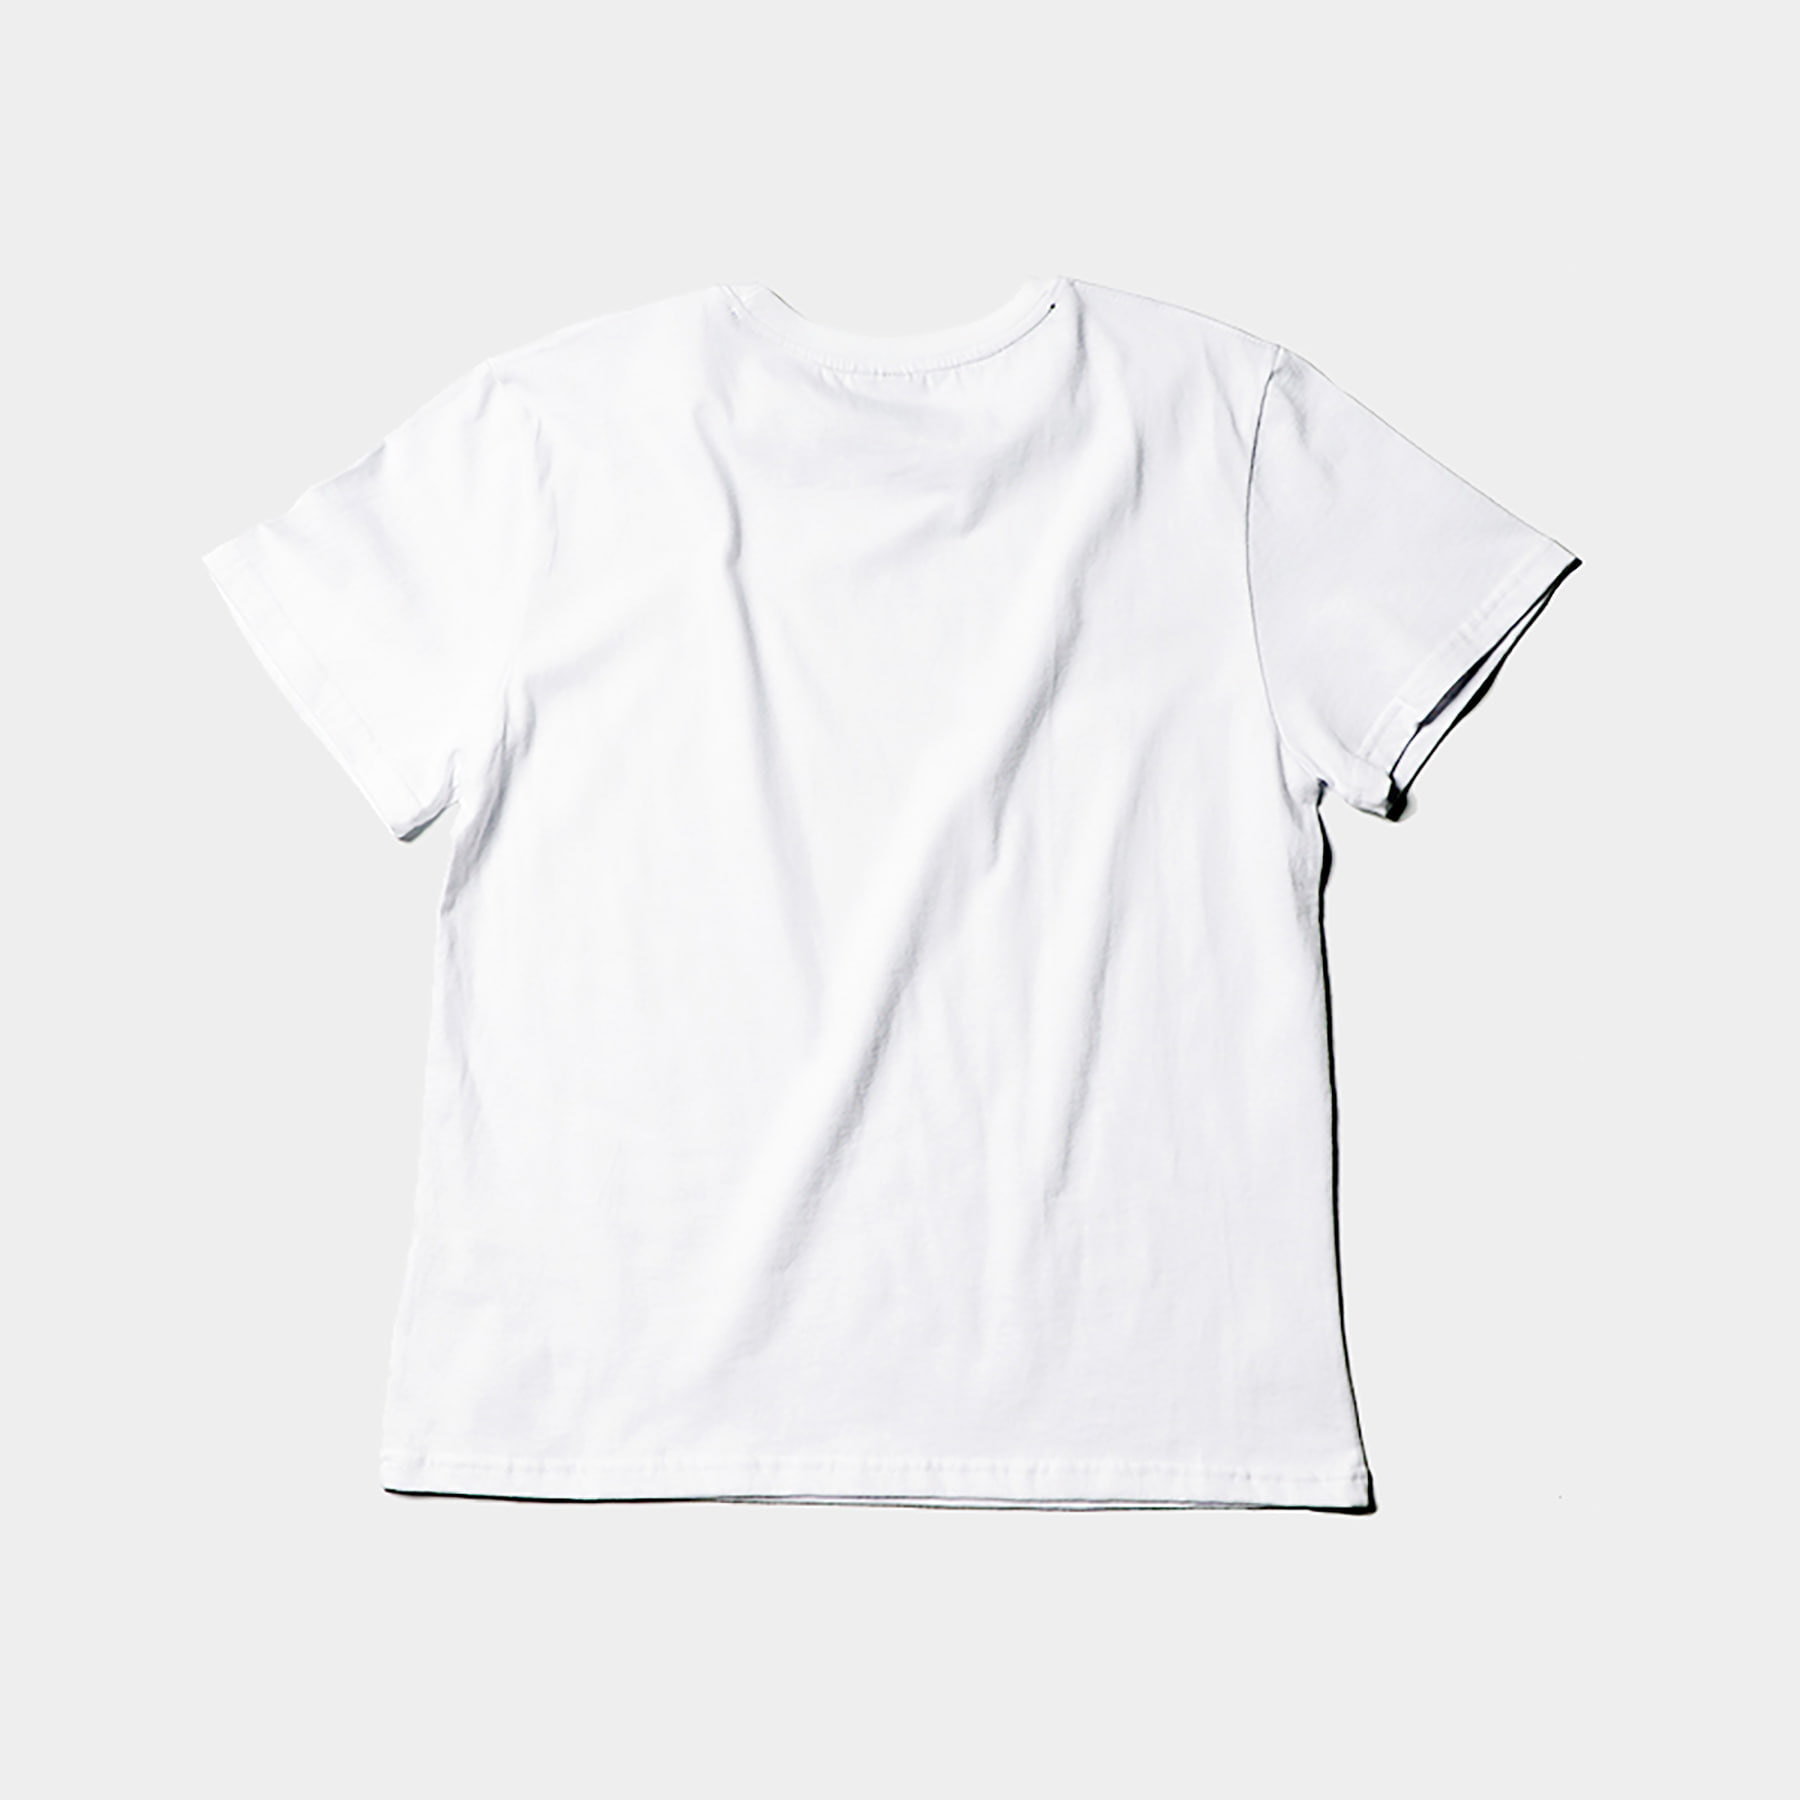 Twinkle point t-shirt (White)